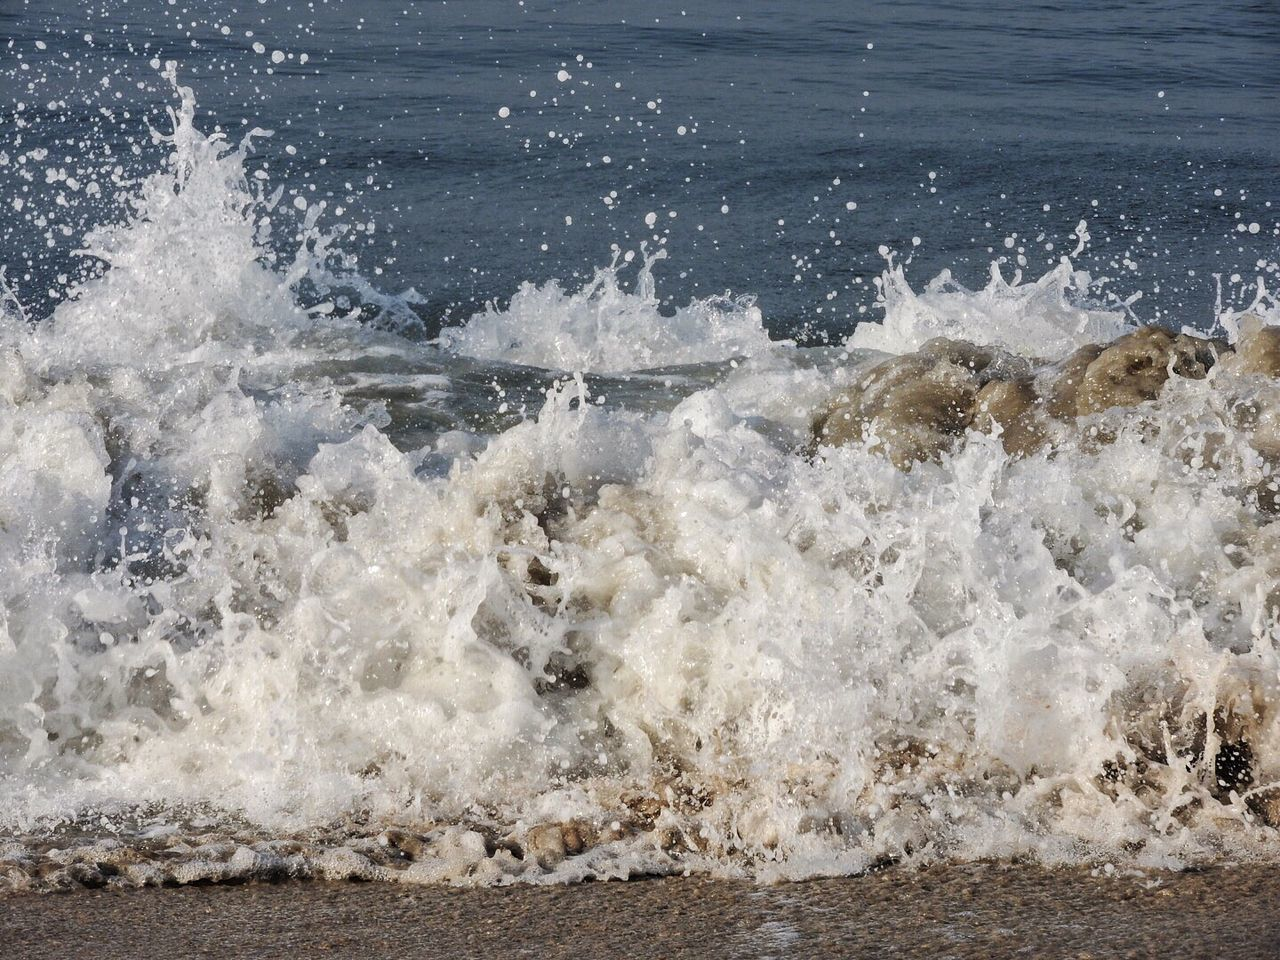 Crashing waves today. There is a cyclone on the other side of India, so very windy. Sea Water Spray Spume Splashing Waves Day